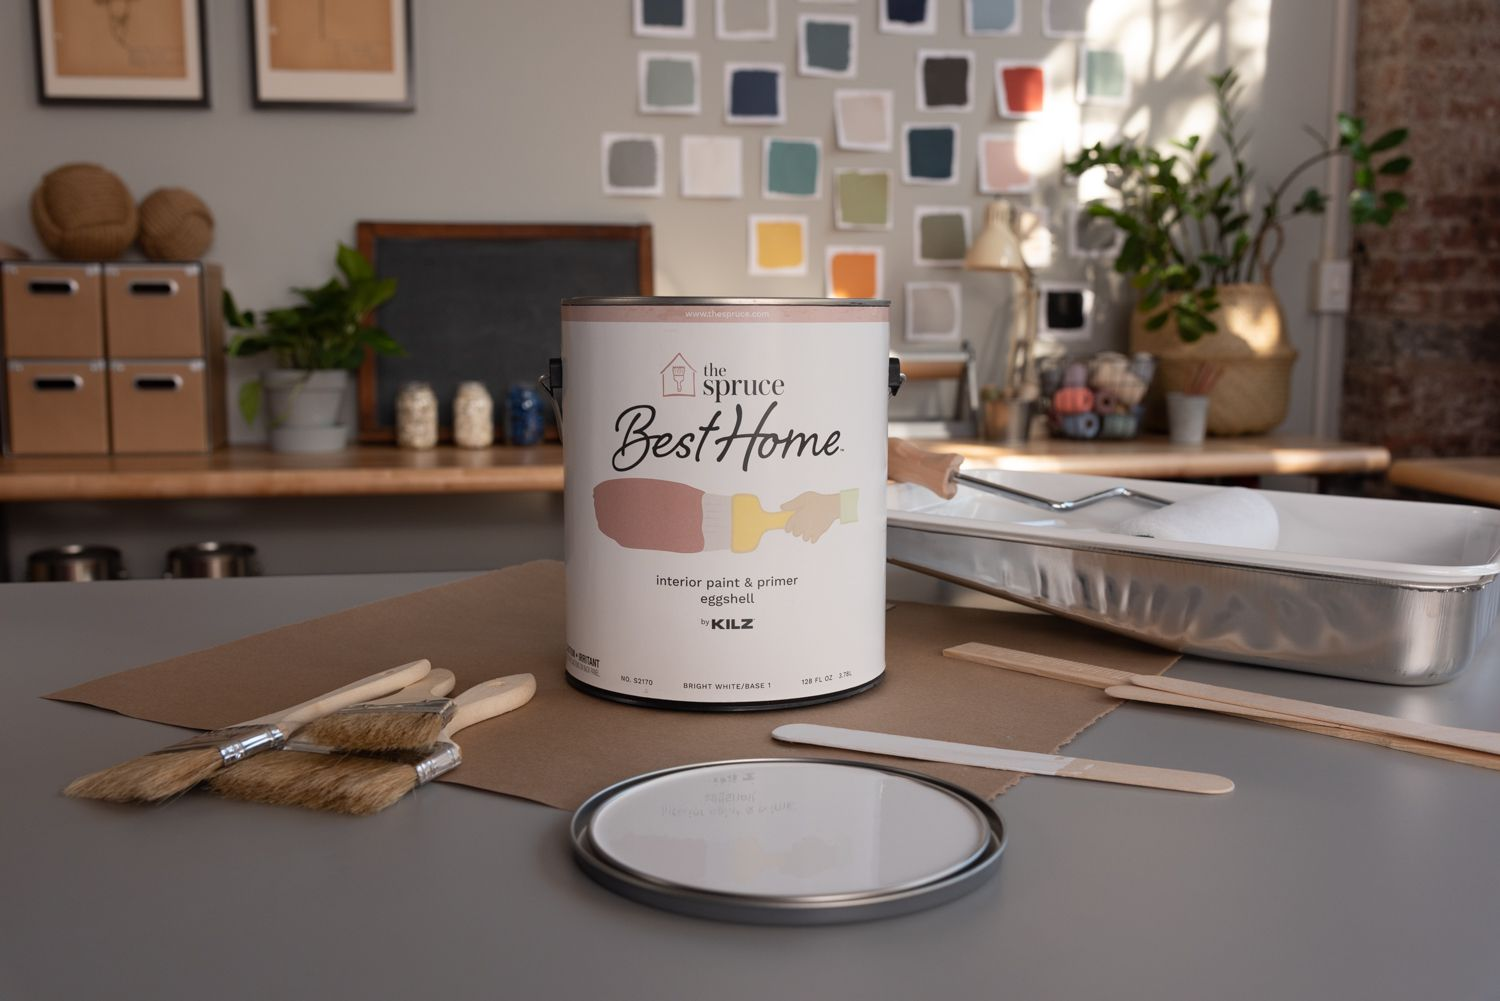 Introducing The Spruce Best Home Interior Paint